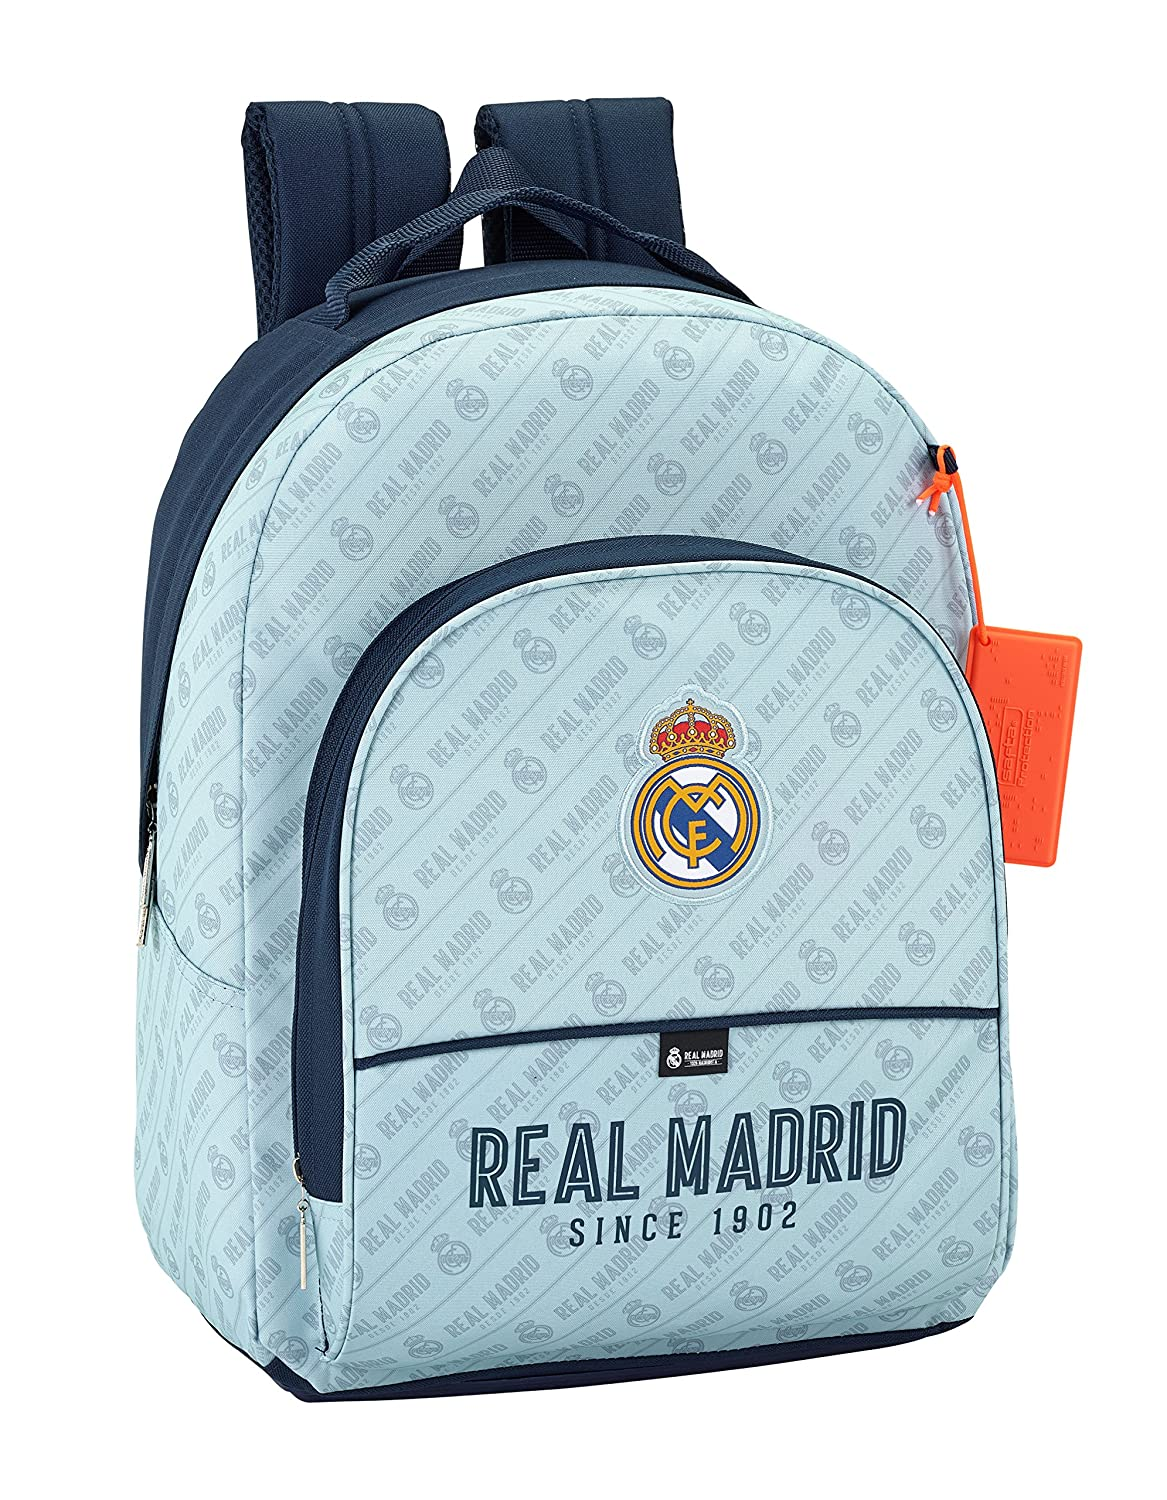 Safta Mochila Real Madrid Corporativa Oficial Mochila Escolar 320x150x420mm: Amazon.es: Equipaje